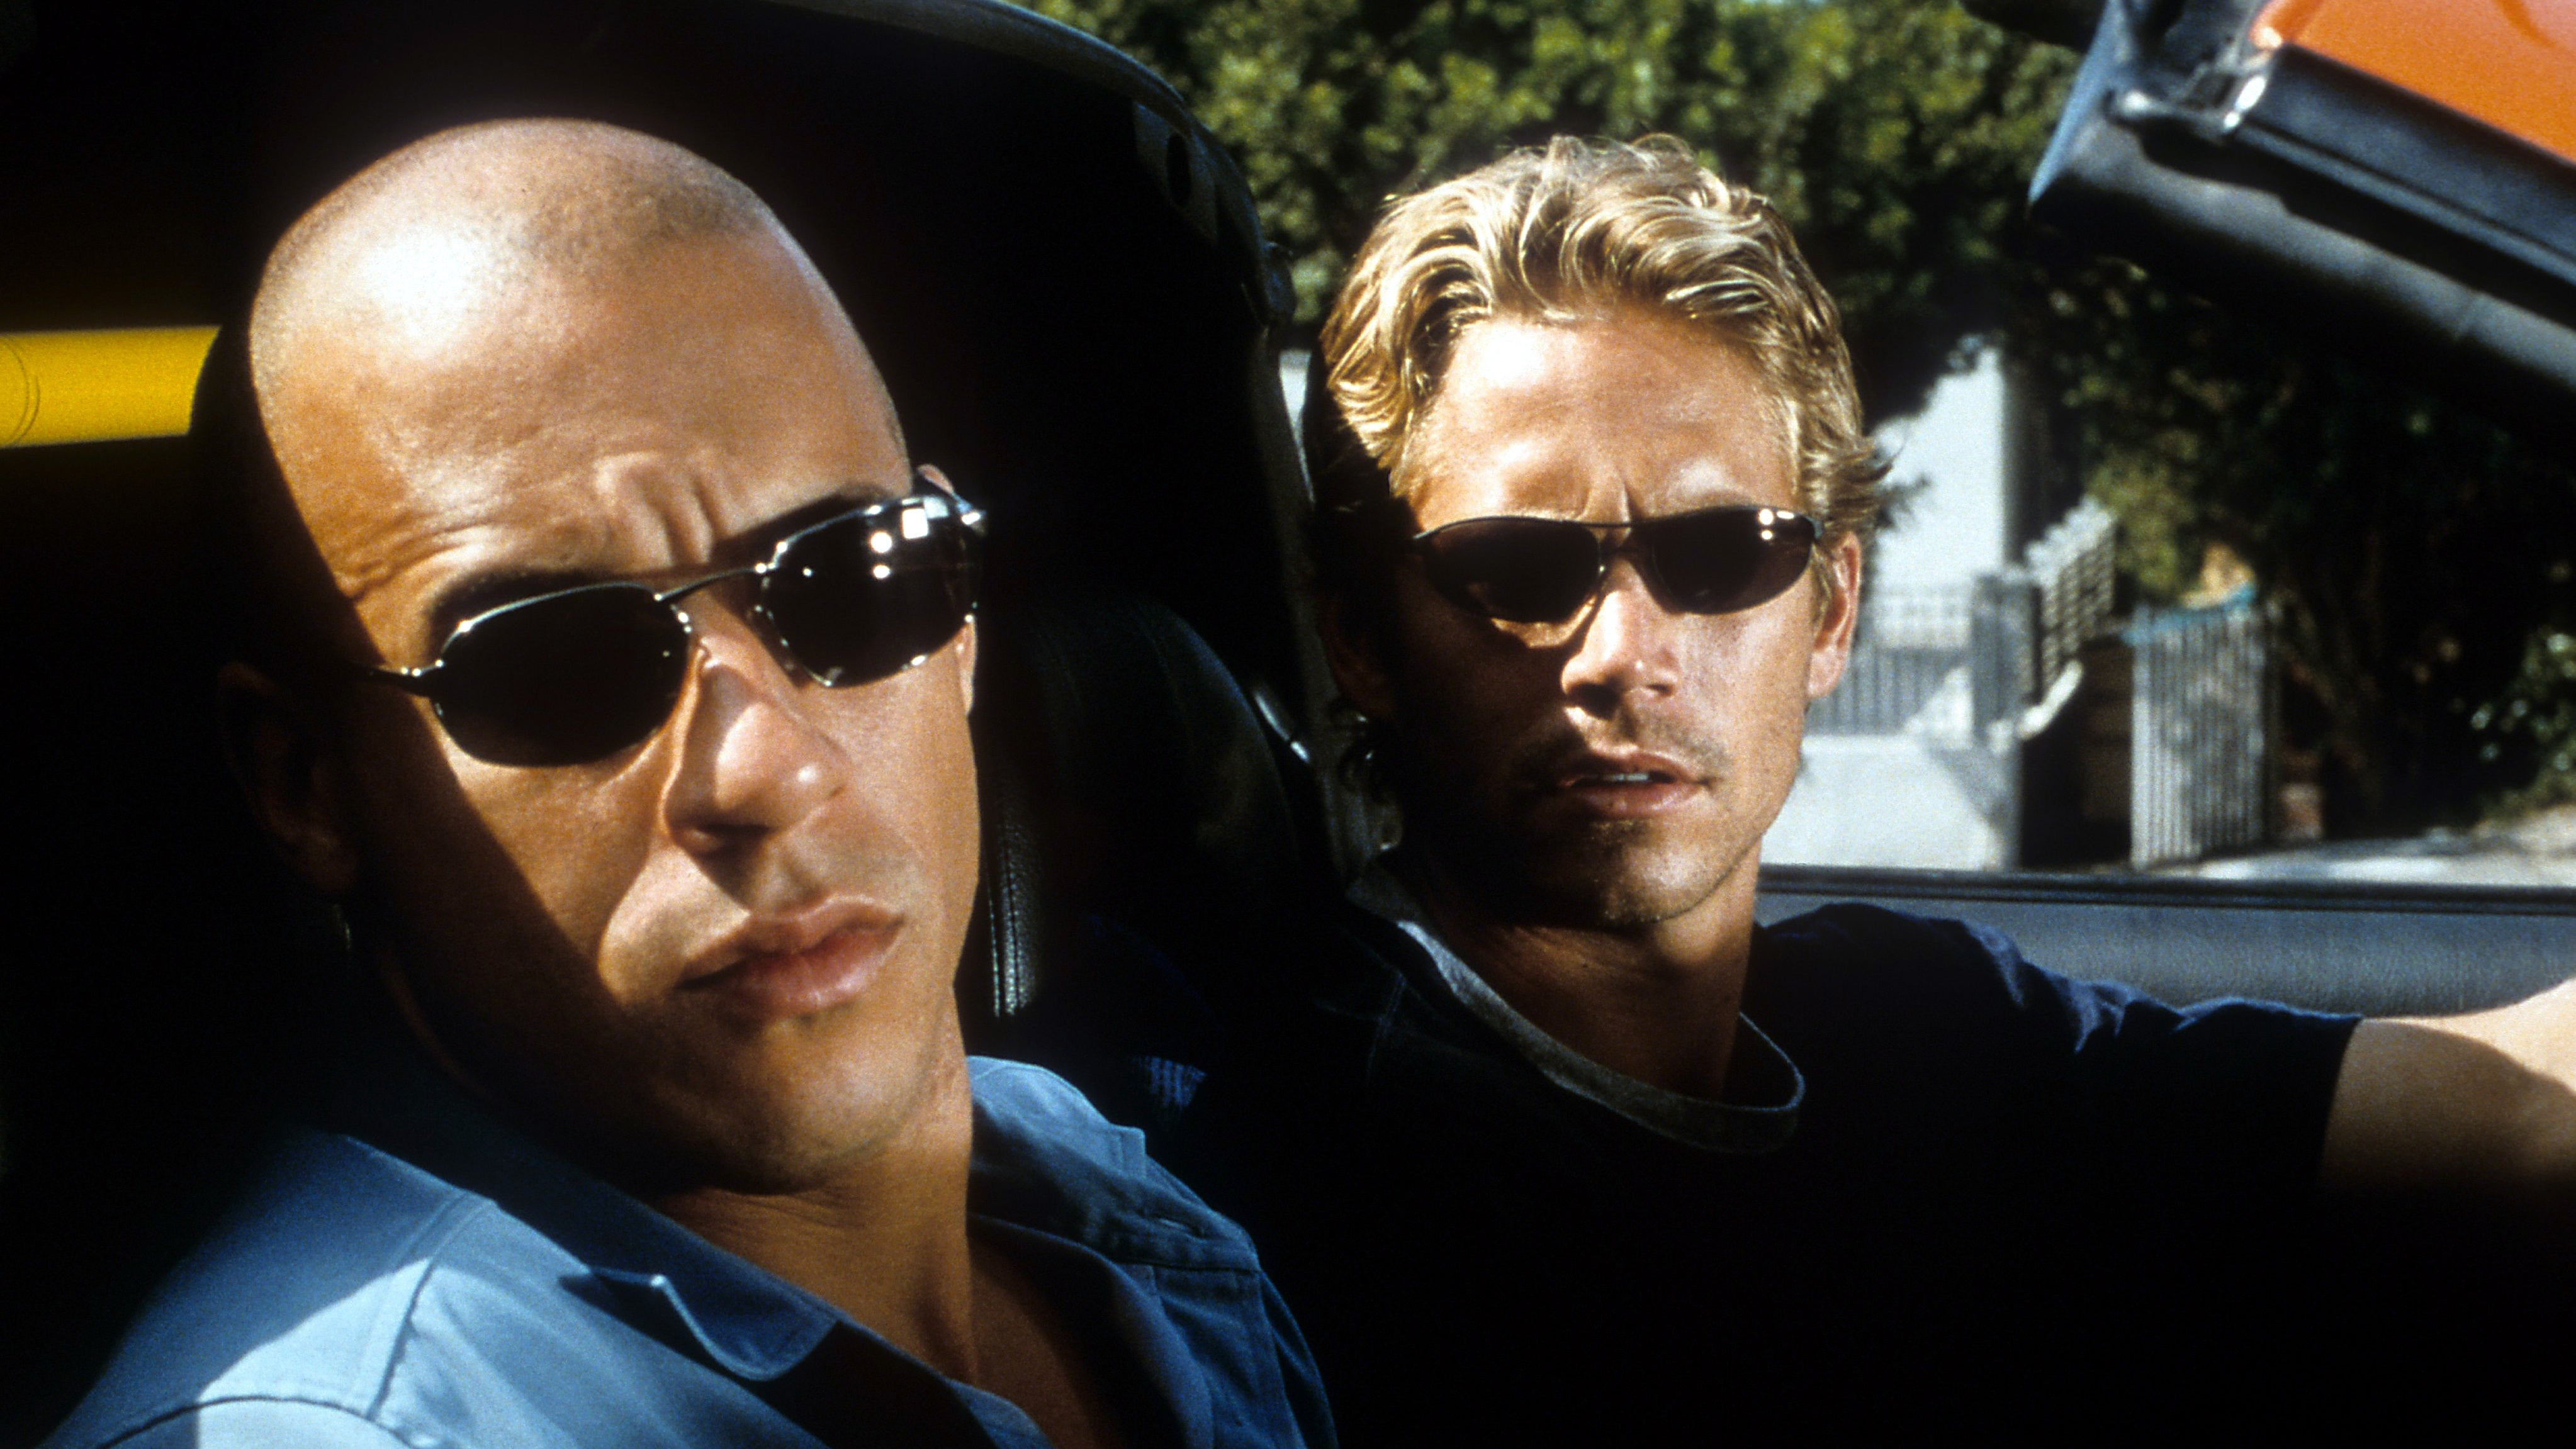 Even The Fast And Furious Movies' Chase Scenes Are About The Importance Of Family